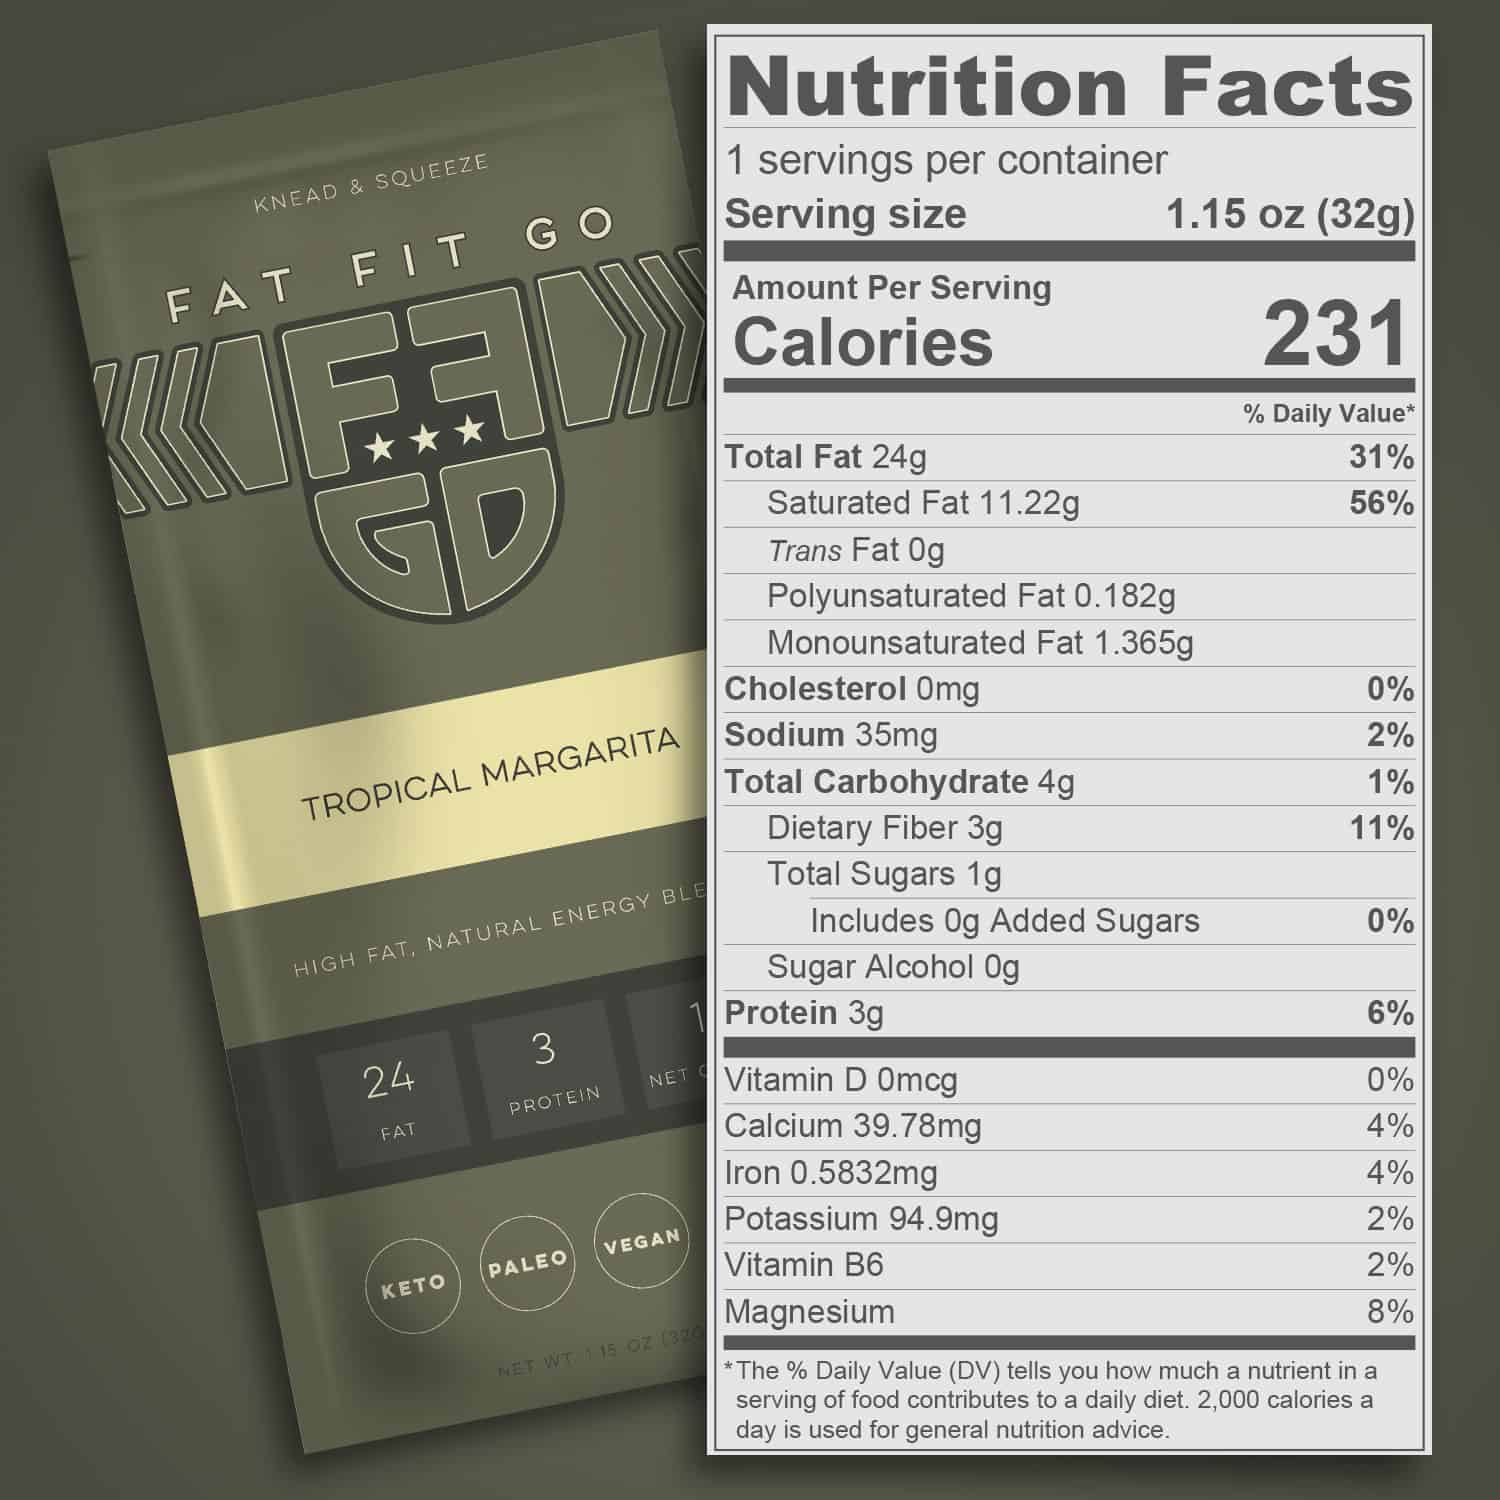 Nutrition Facts - Fat Fit Go Tropical Margarita